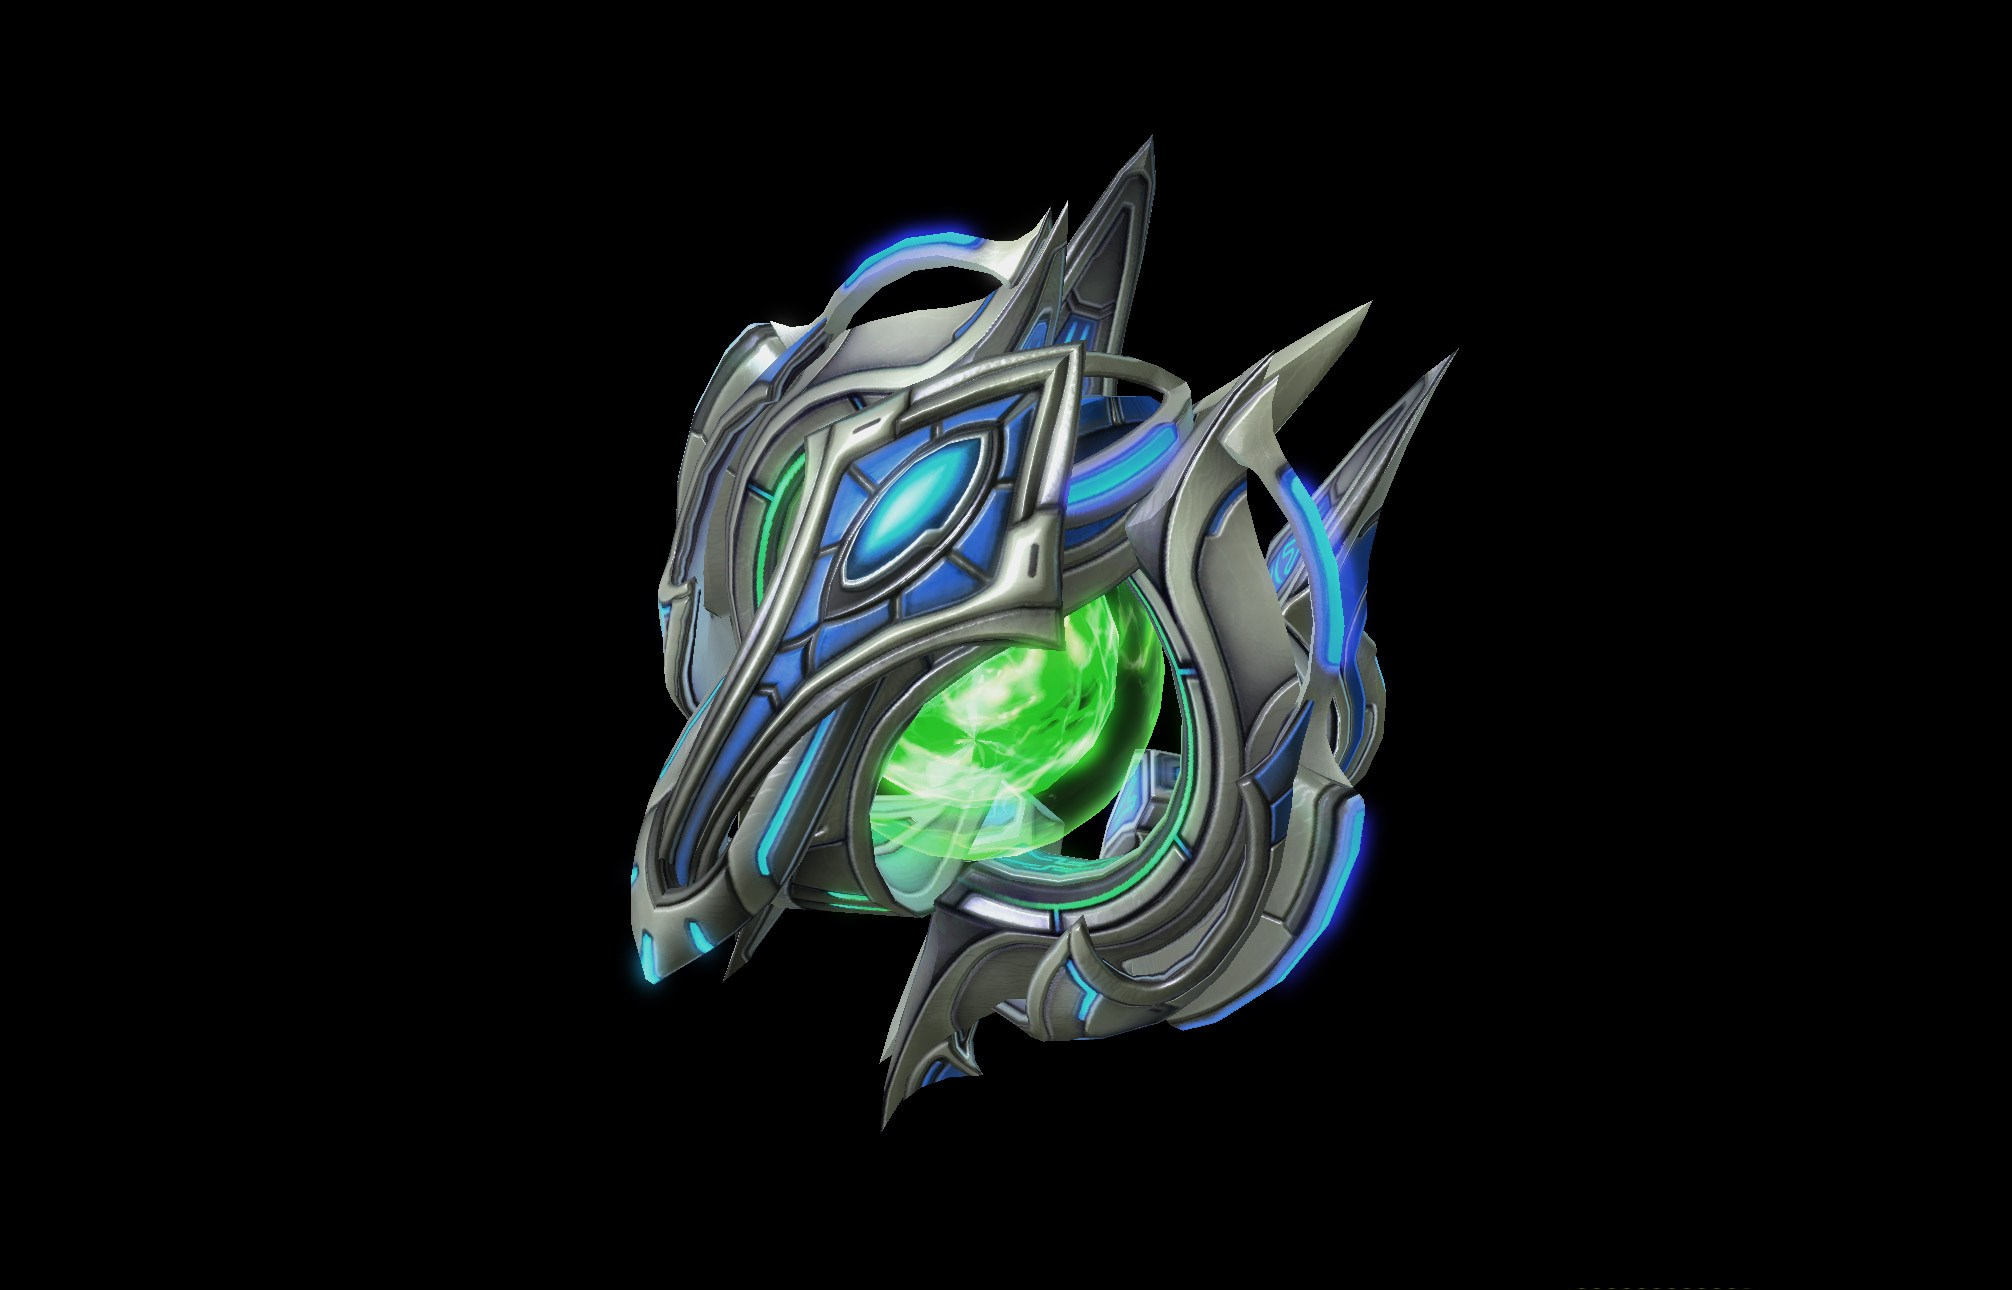 starcraft-ii-heart-of-the-swarm-1080p-high-quality-by-Leaf-Chester-wallpaper-wp36010874